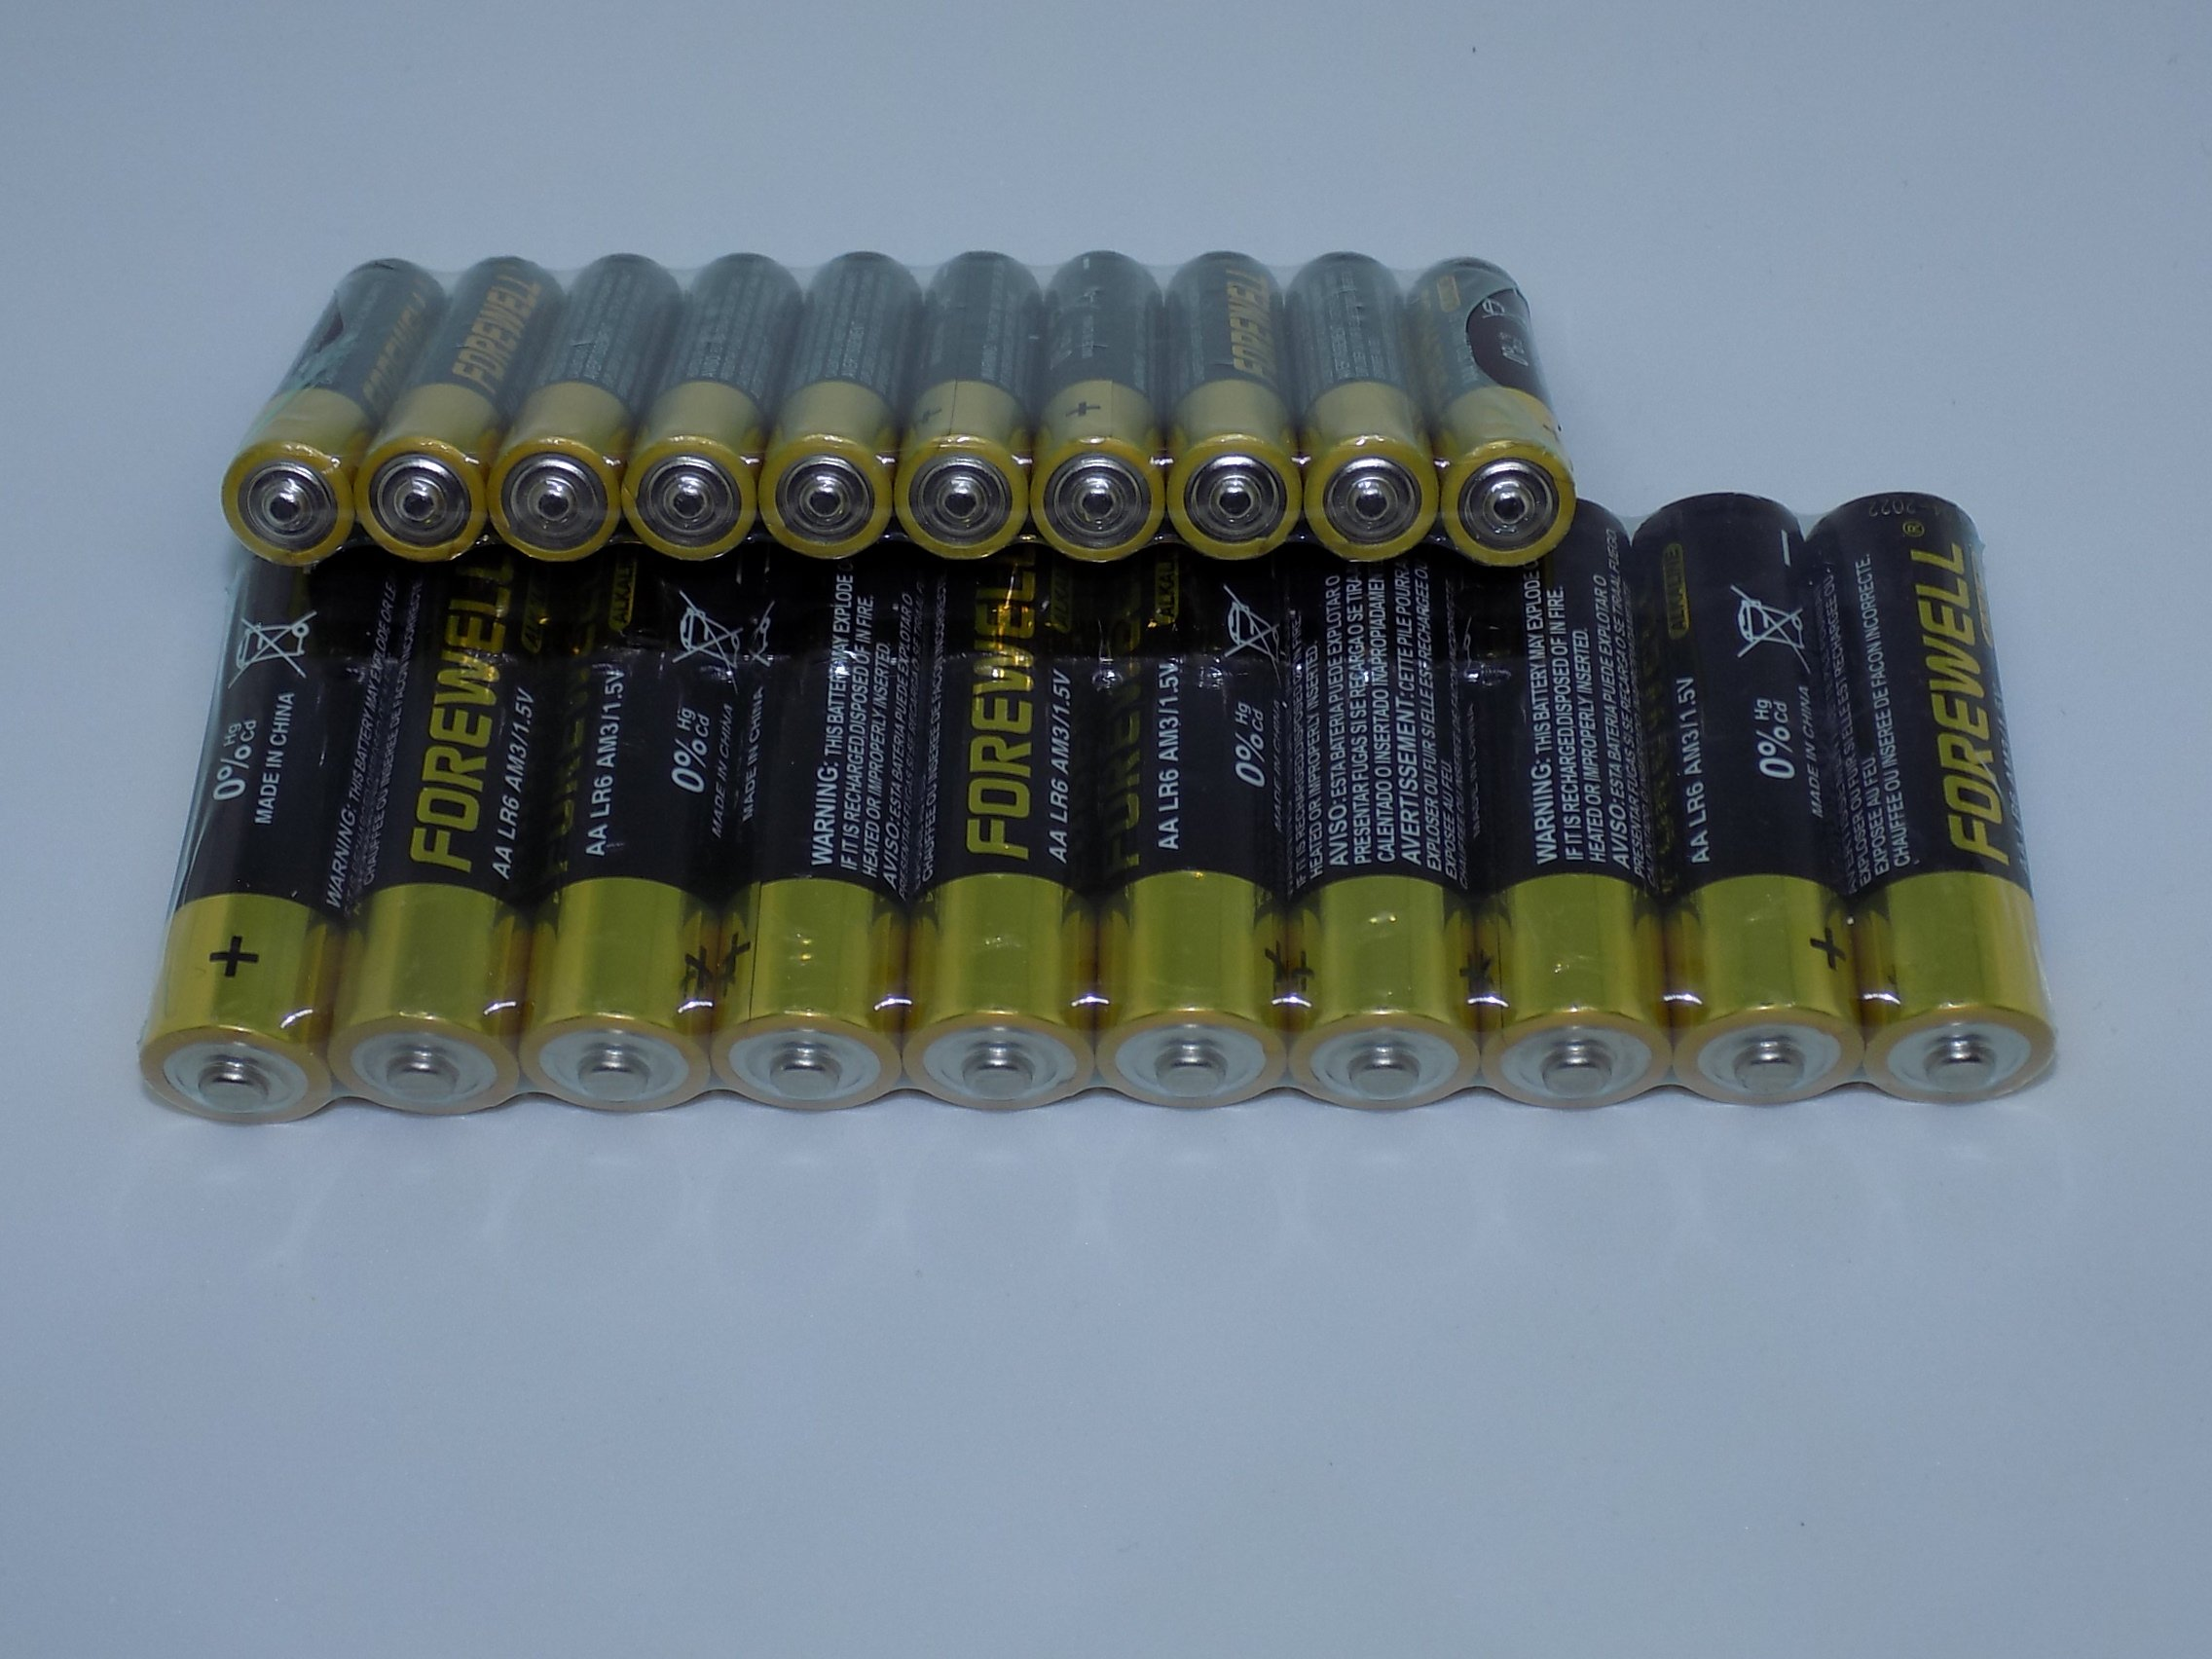 Alkaline d cell batteries,High Capacity Alkaline Batteries,AA (5 # 2800mAH) and AAA (7 # 1200mAH) , A total of 20Pack (10Pack per Model)